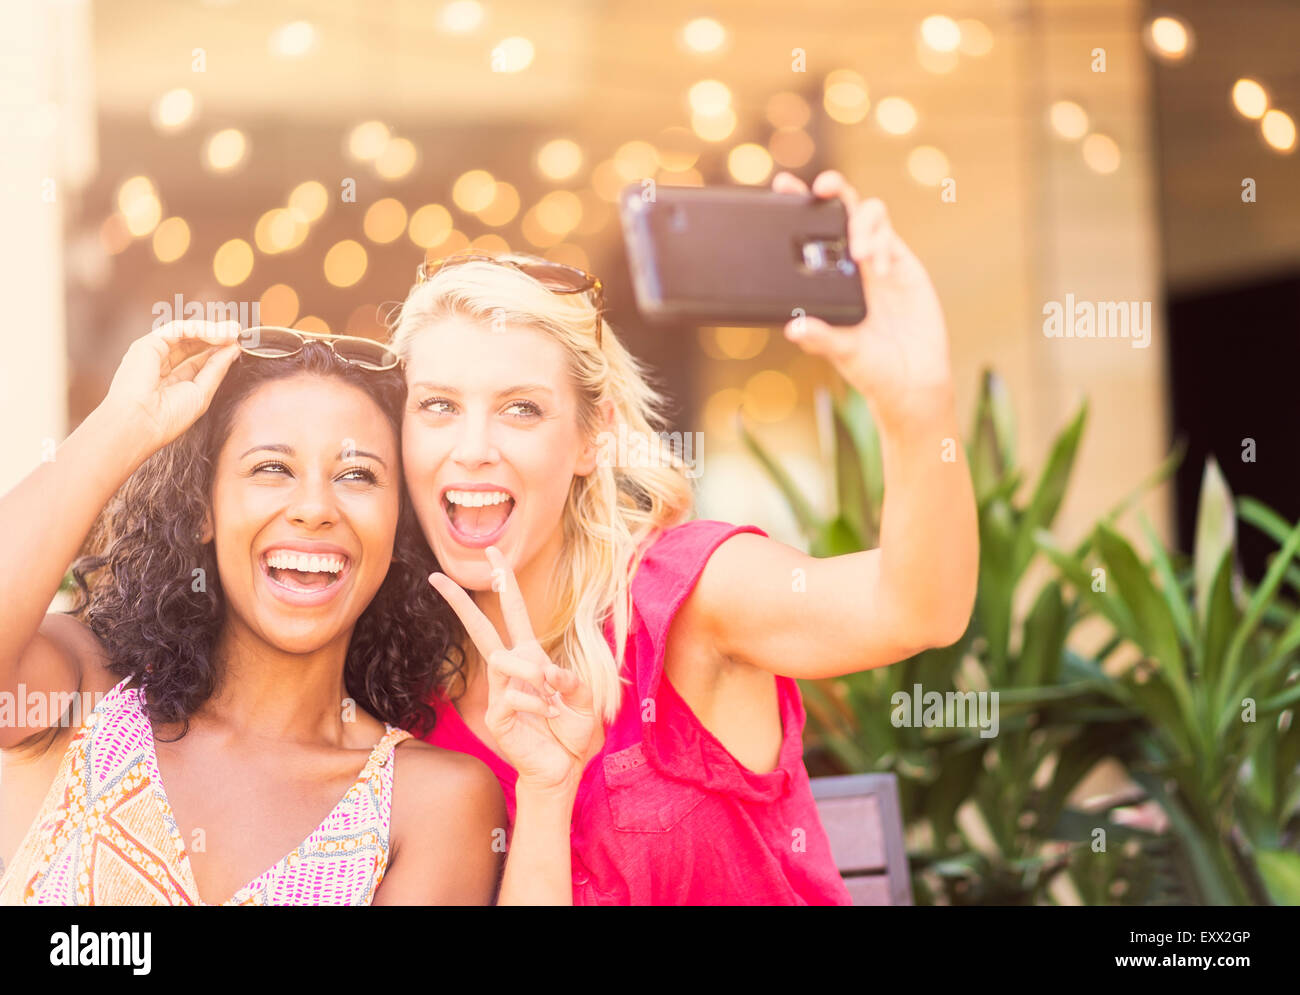 Female friends taking selfie with smart phone in cafe - Stock Image